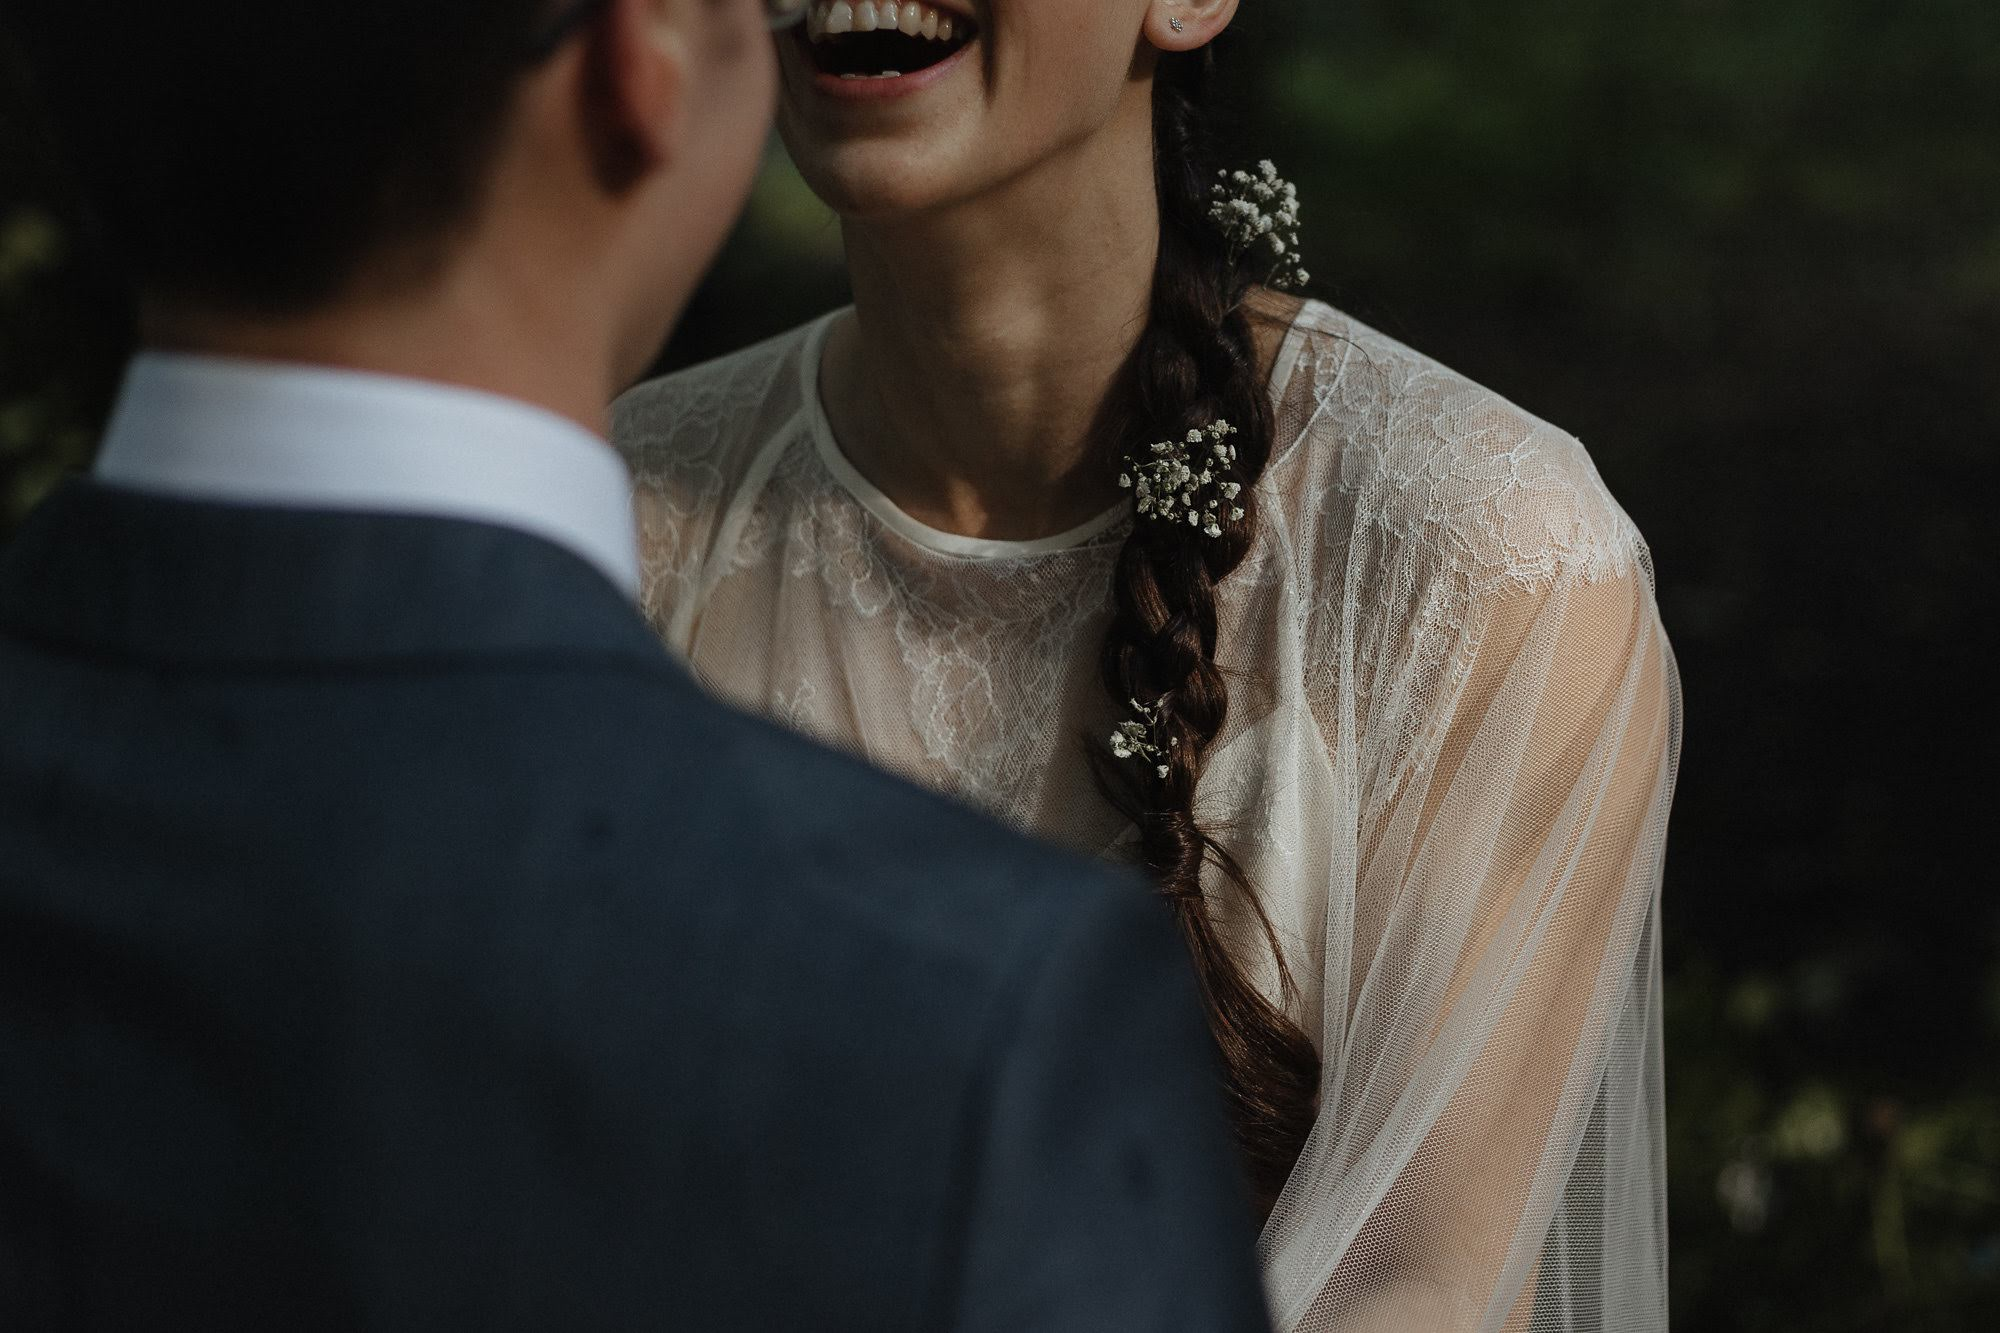 Rowanne-Laid-back-Woodland-Wedding-Sheffield-Clematis-Lace-Silk-Bohemian-Wedding-Gown-Kate-Beaumont-32.jpg